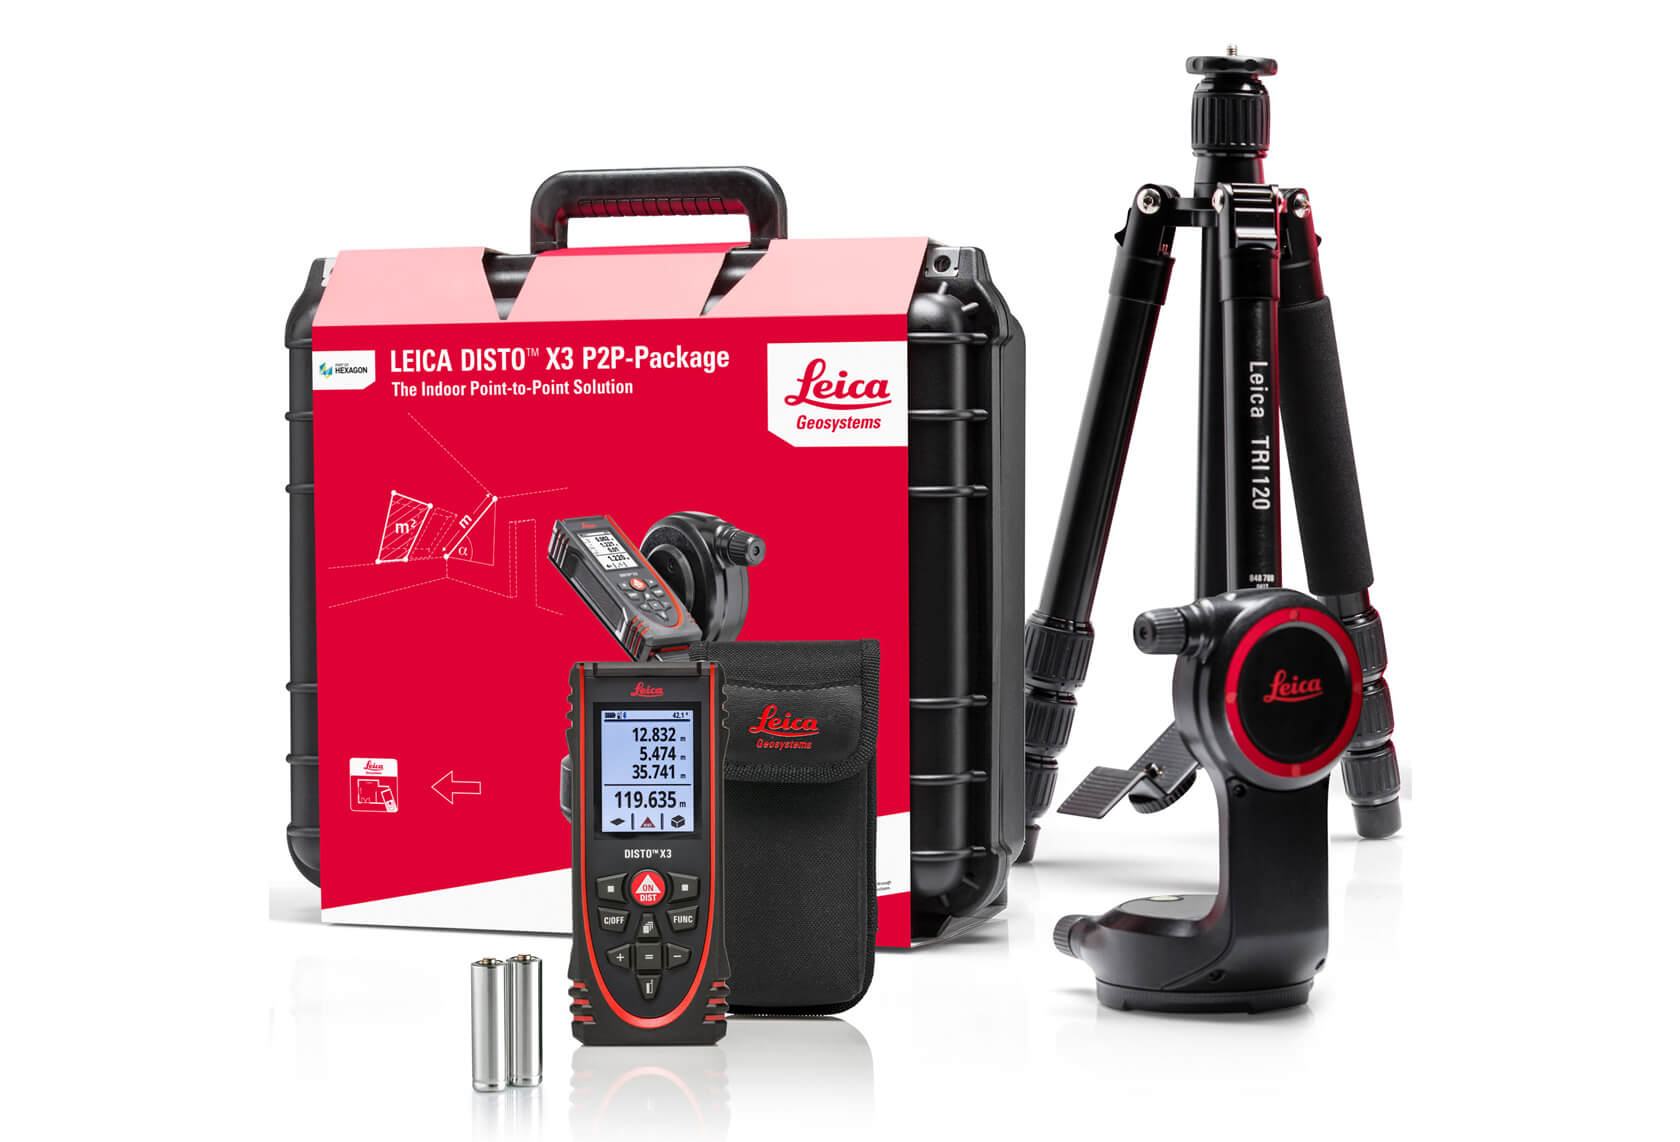 Leica Geosystems Distos and Accessories 1680 1142